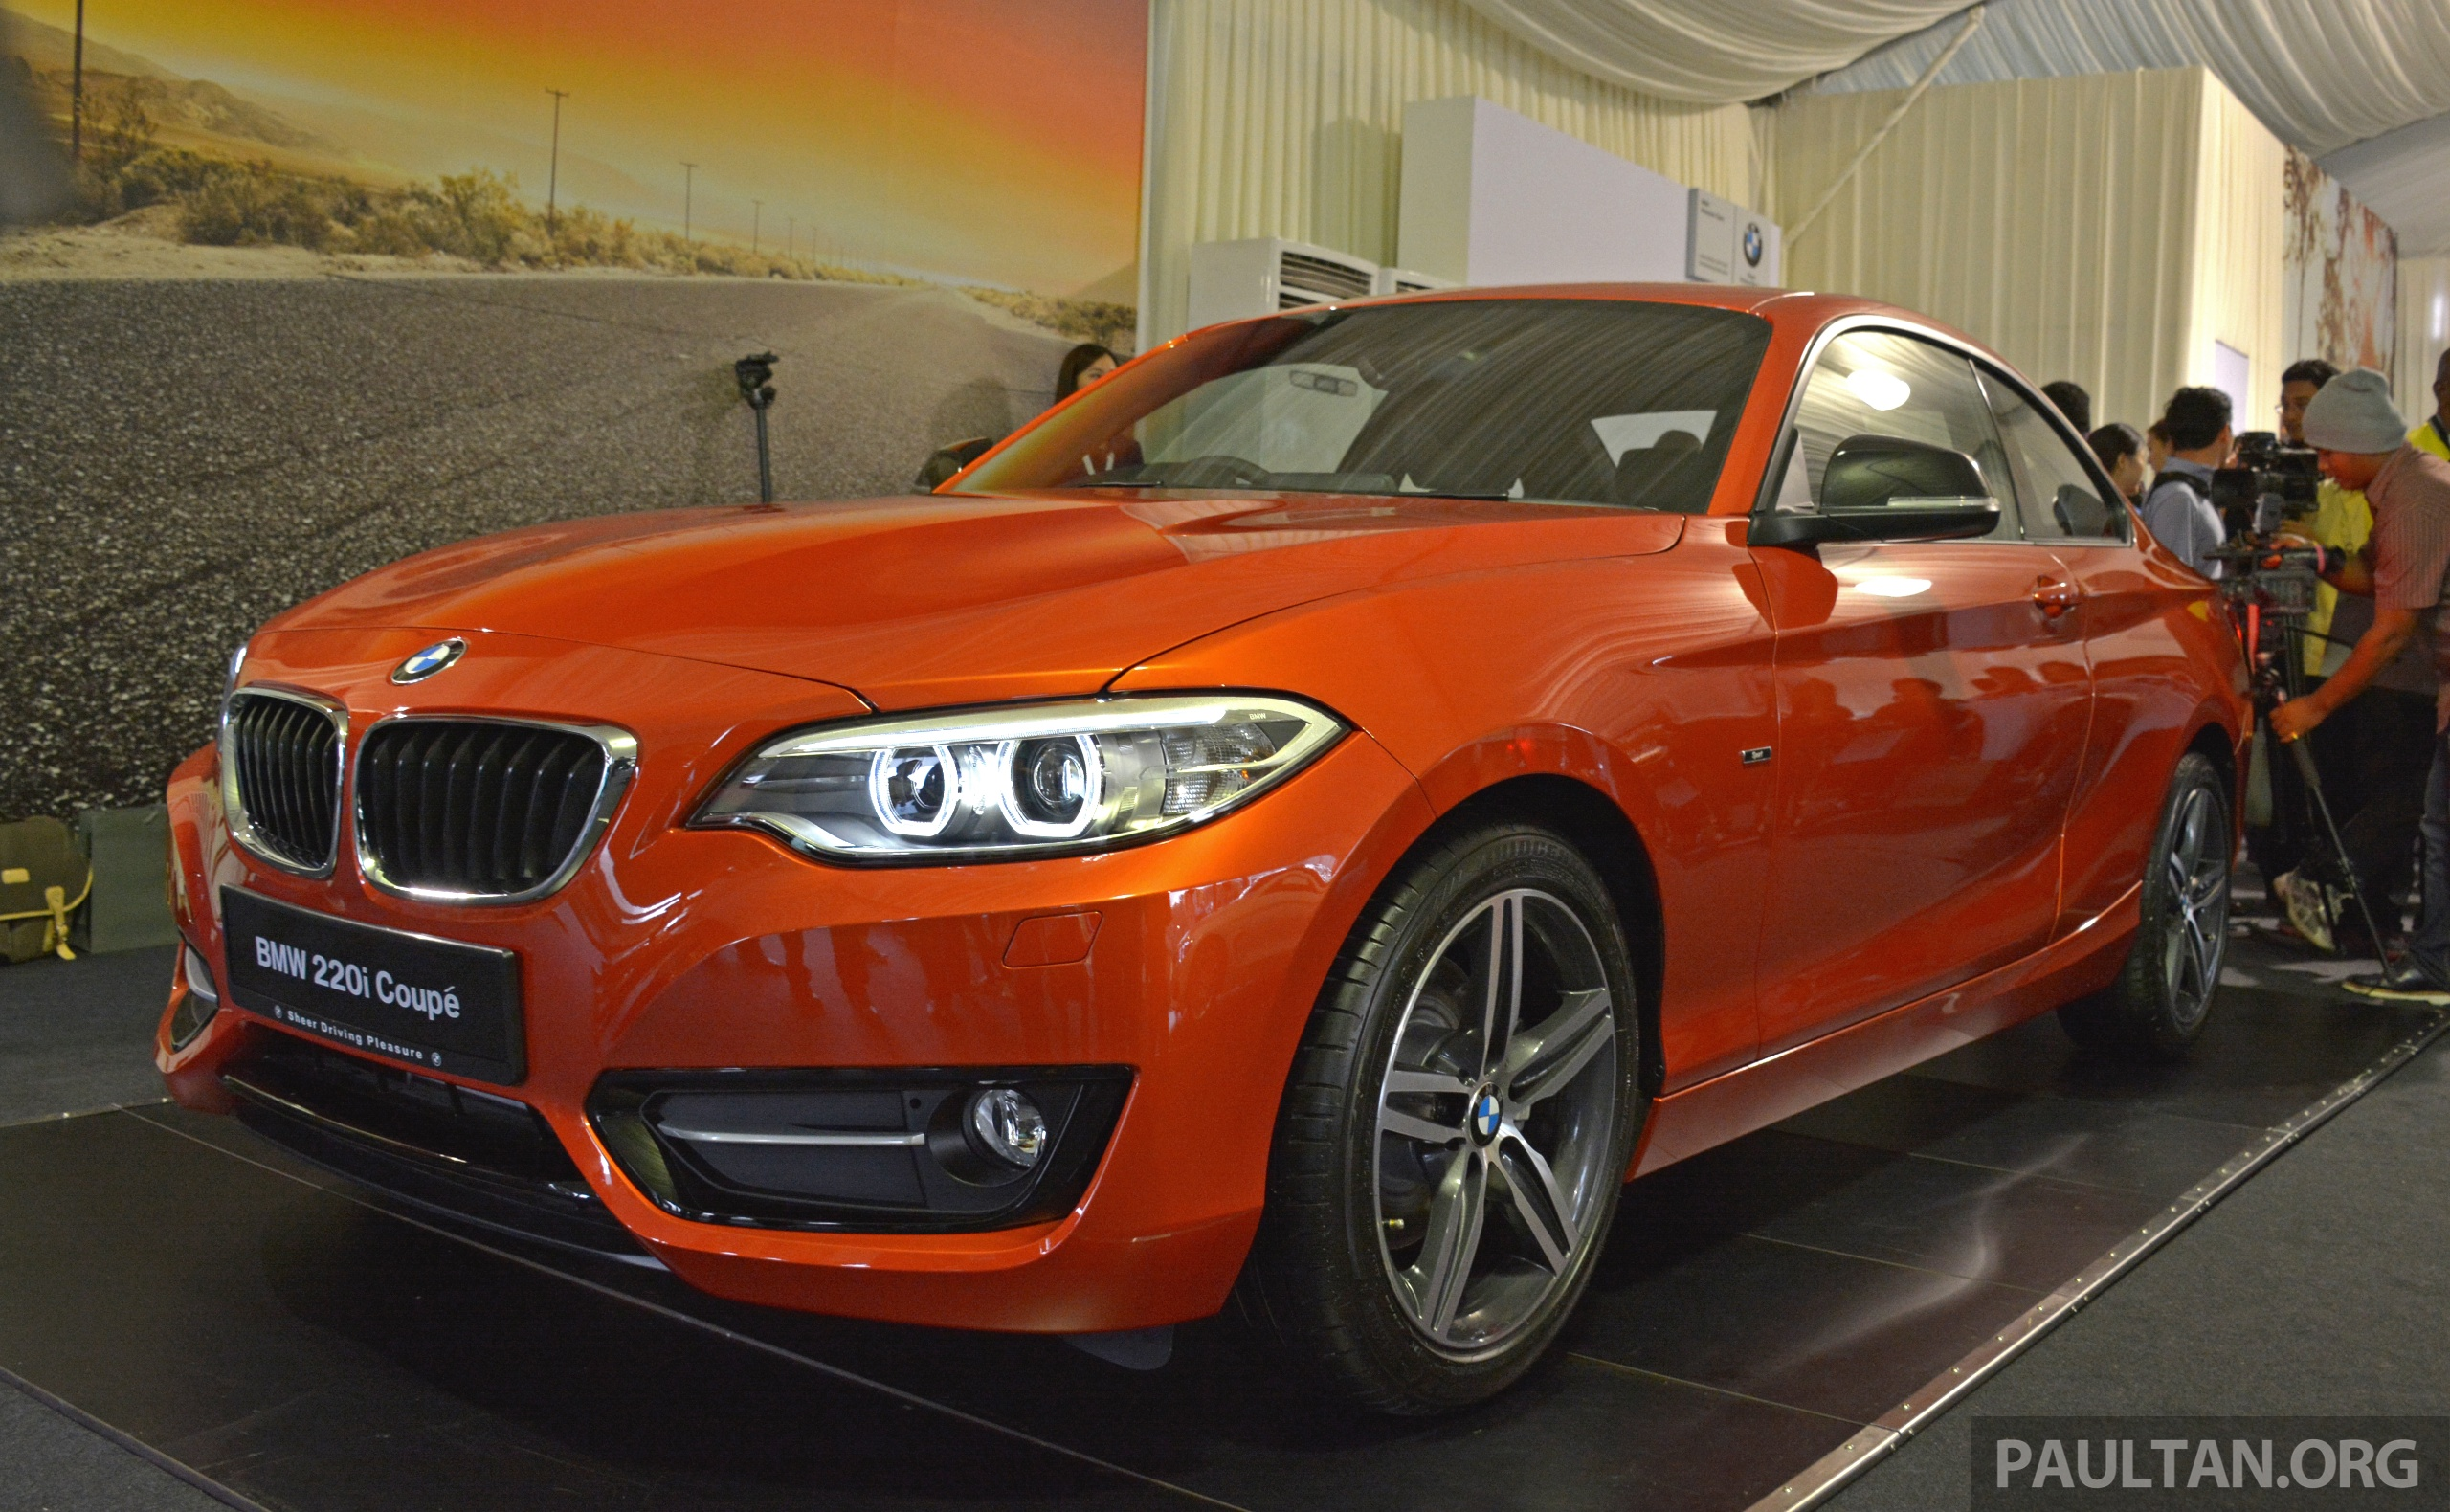 Bmw 2 Series Coupe Launched 220i From Rm260k Paul Tan